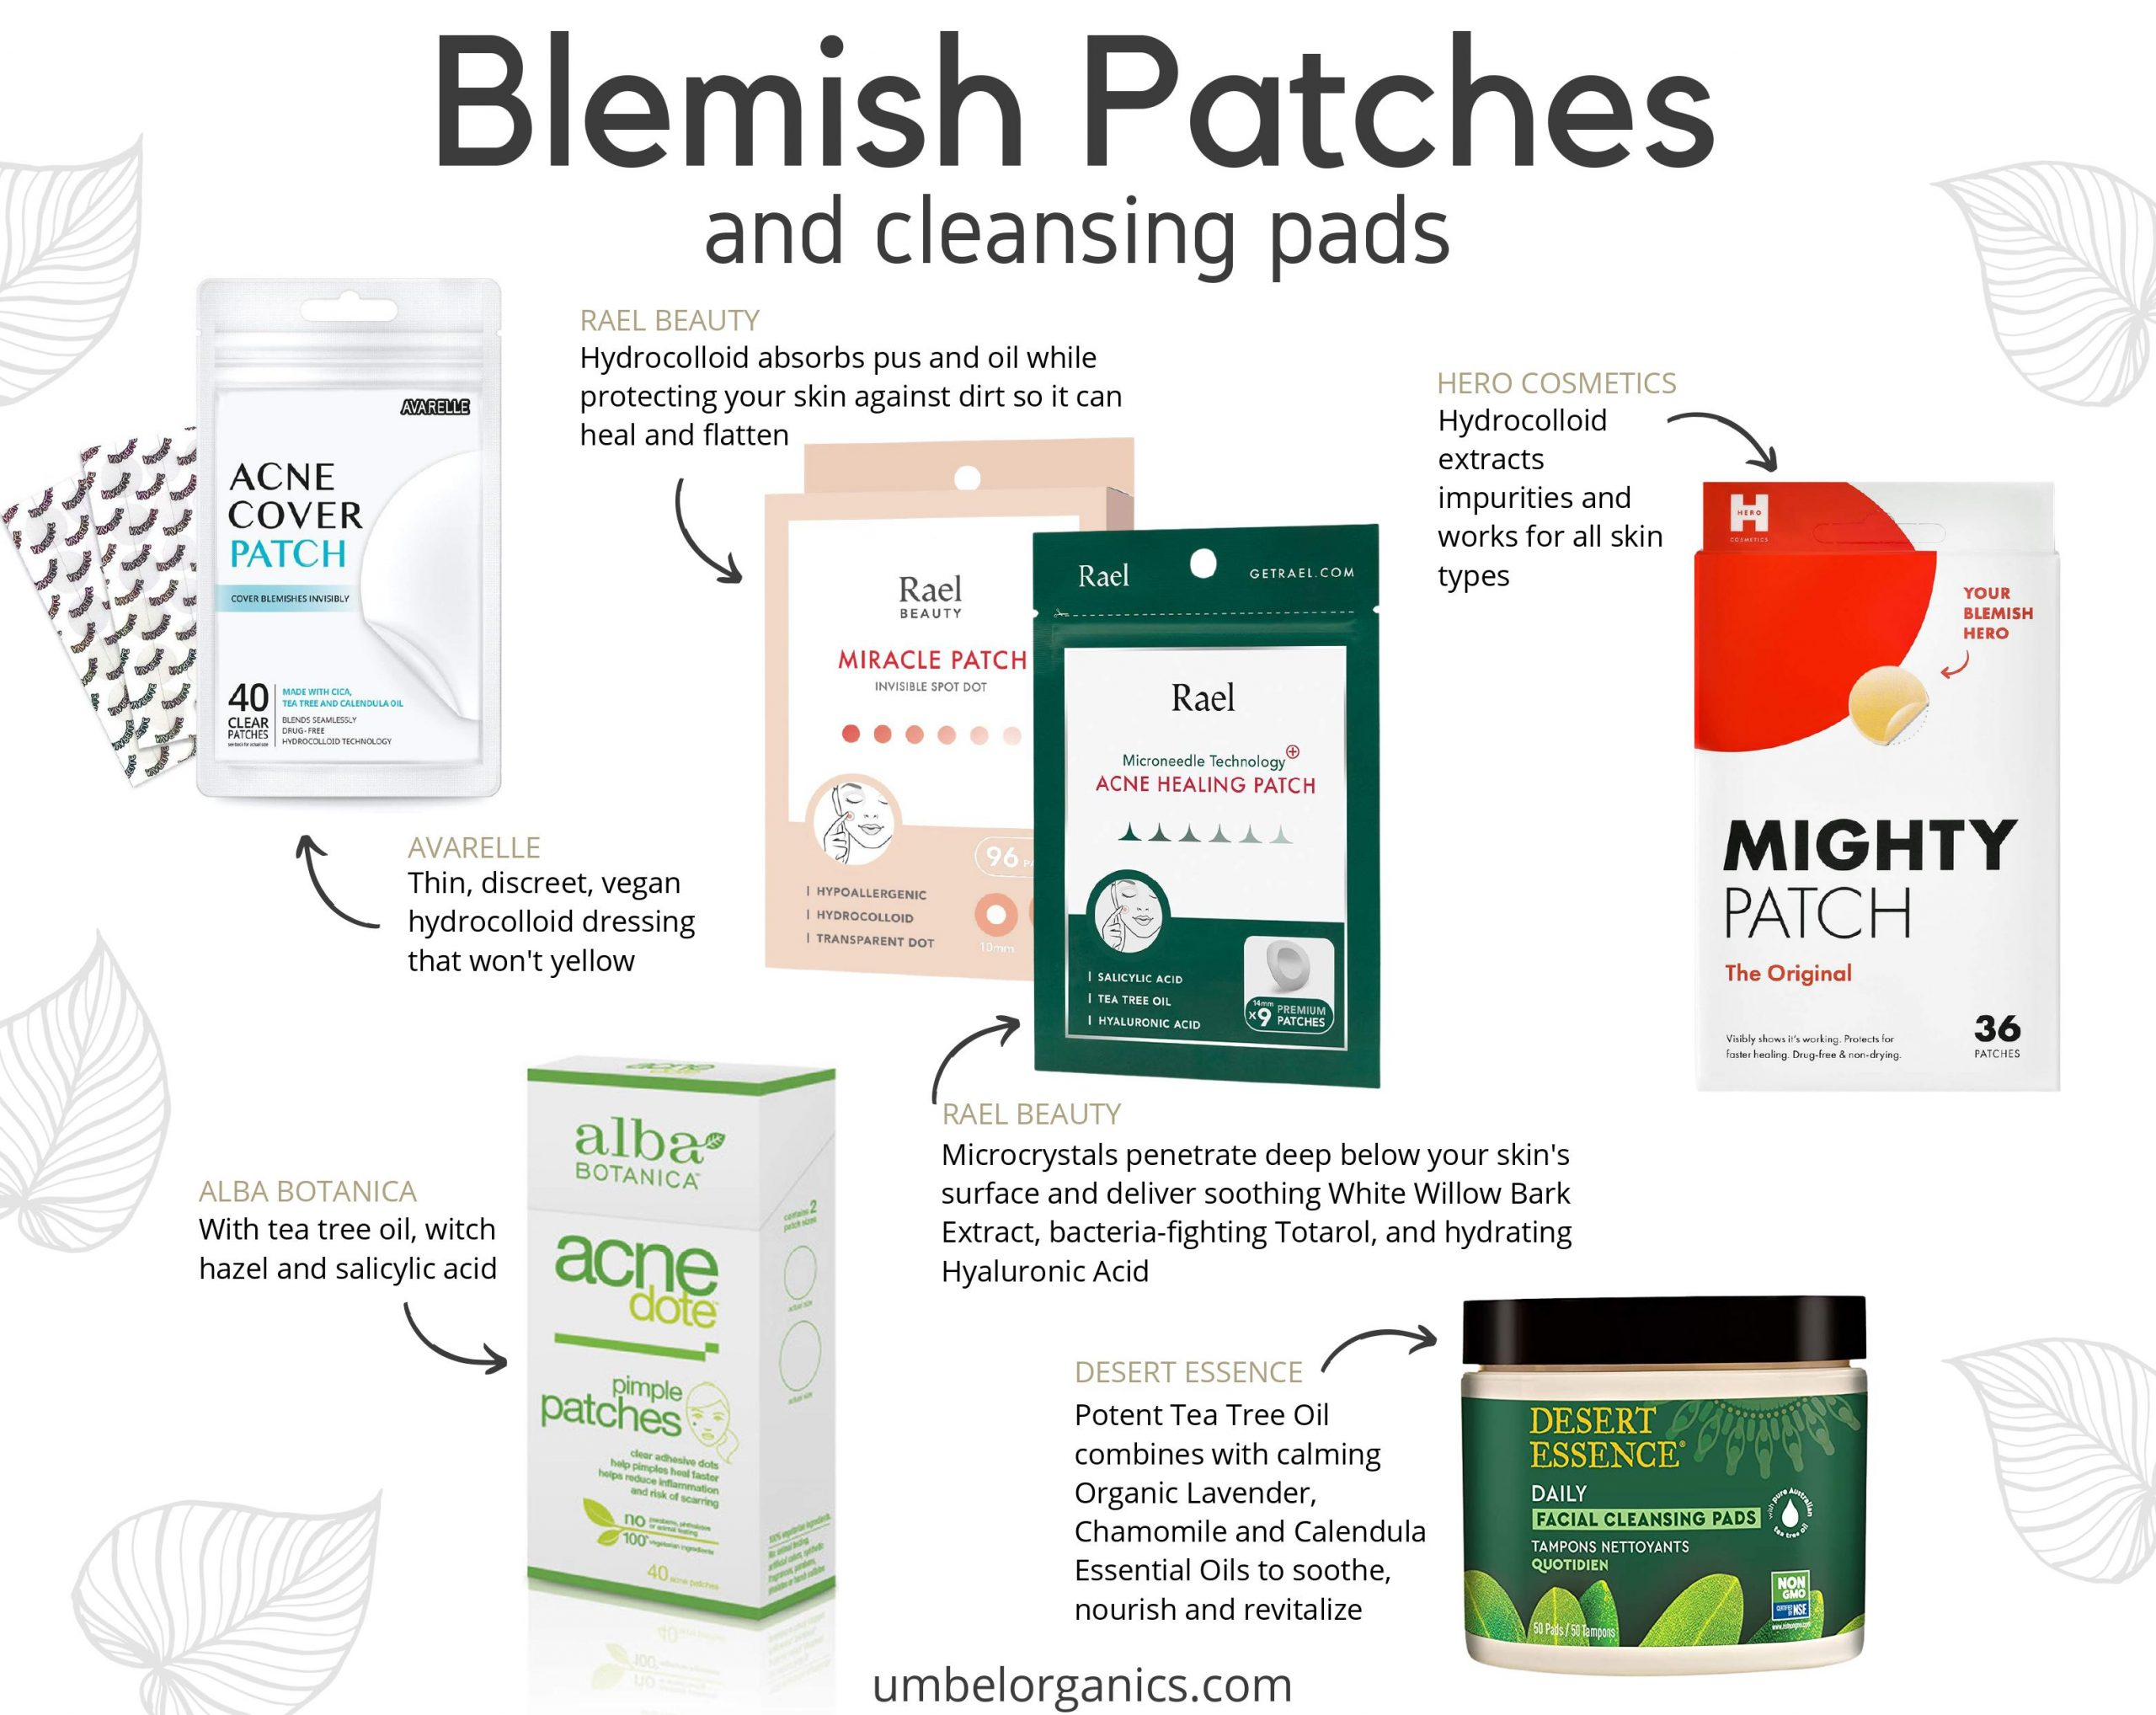 5 brands of clean, affordable Blemish patches and cleansing pads